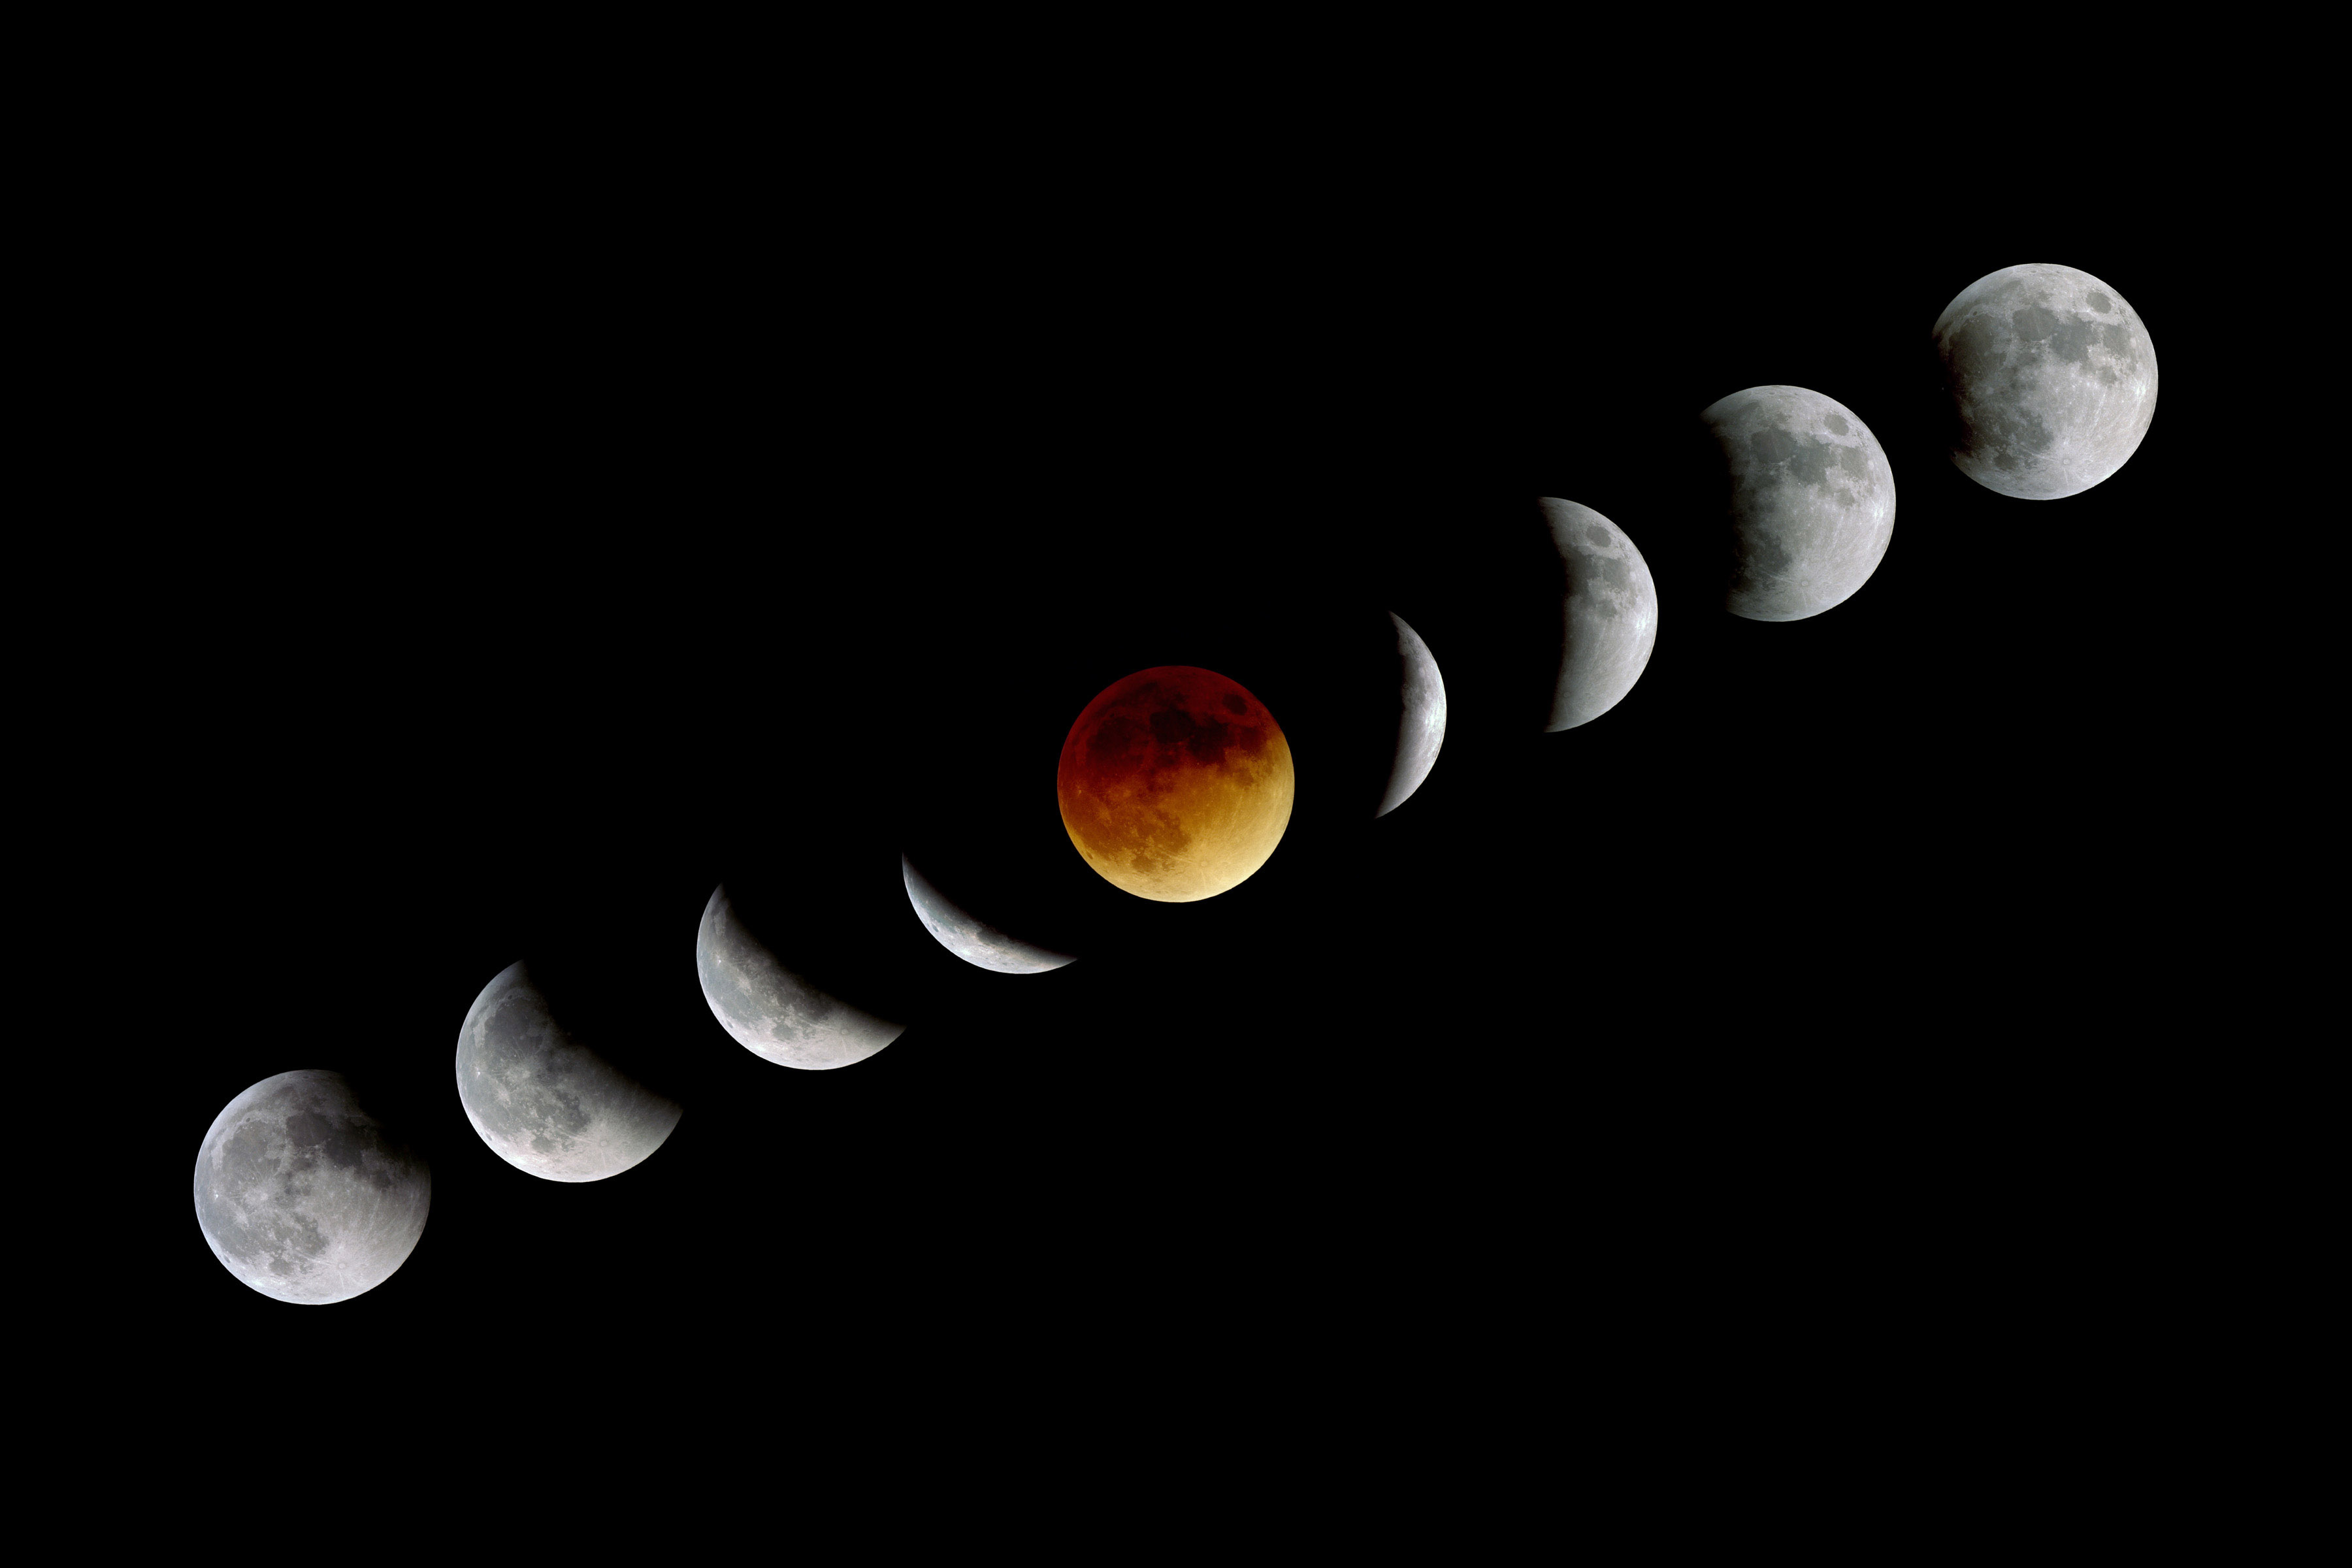 Montage of nine exposures taken during the total lunar eclipse of 21st January 2000.